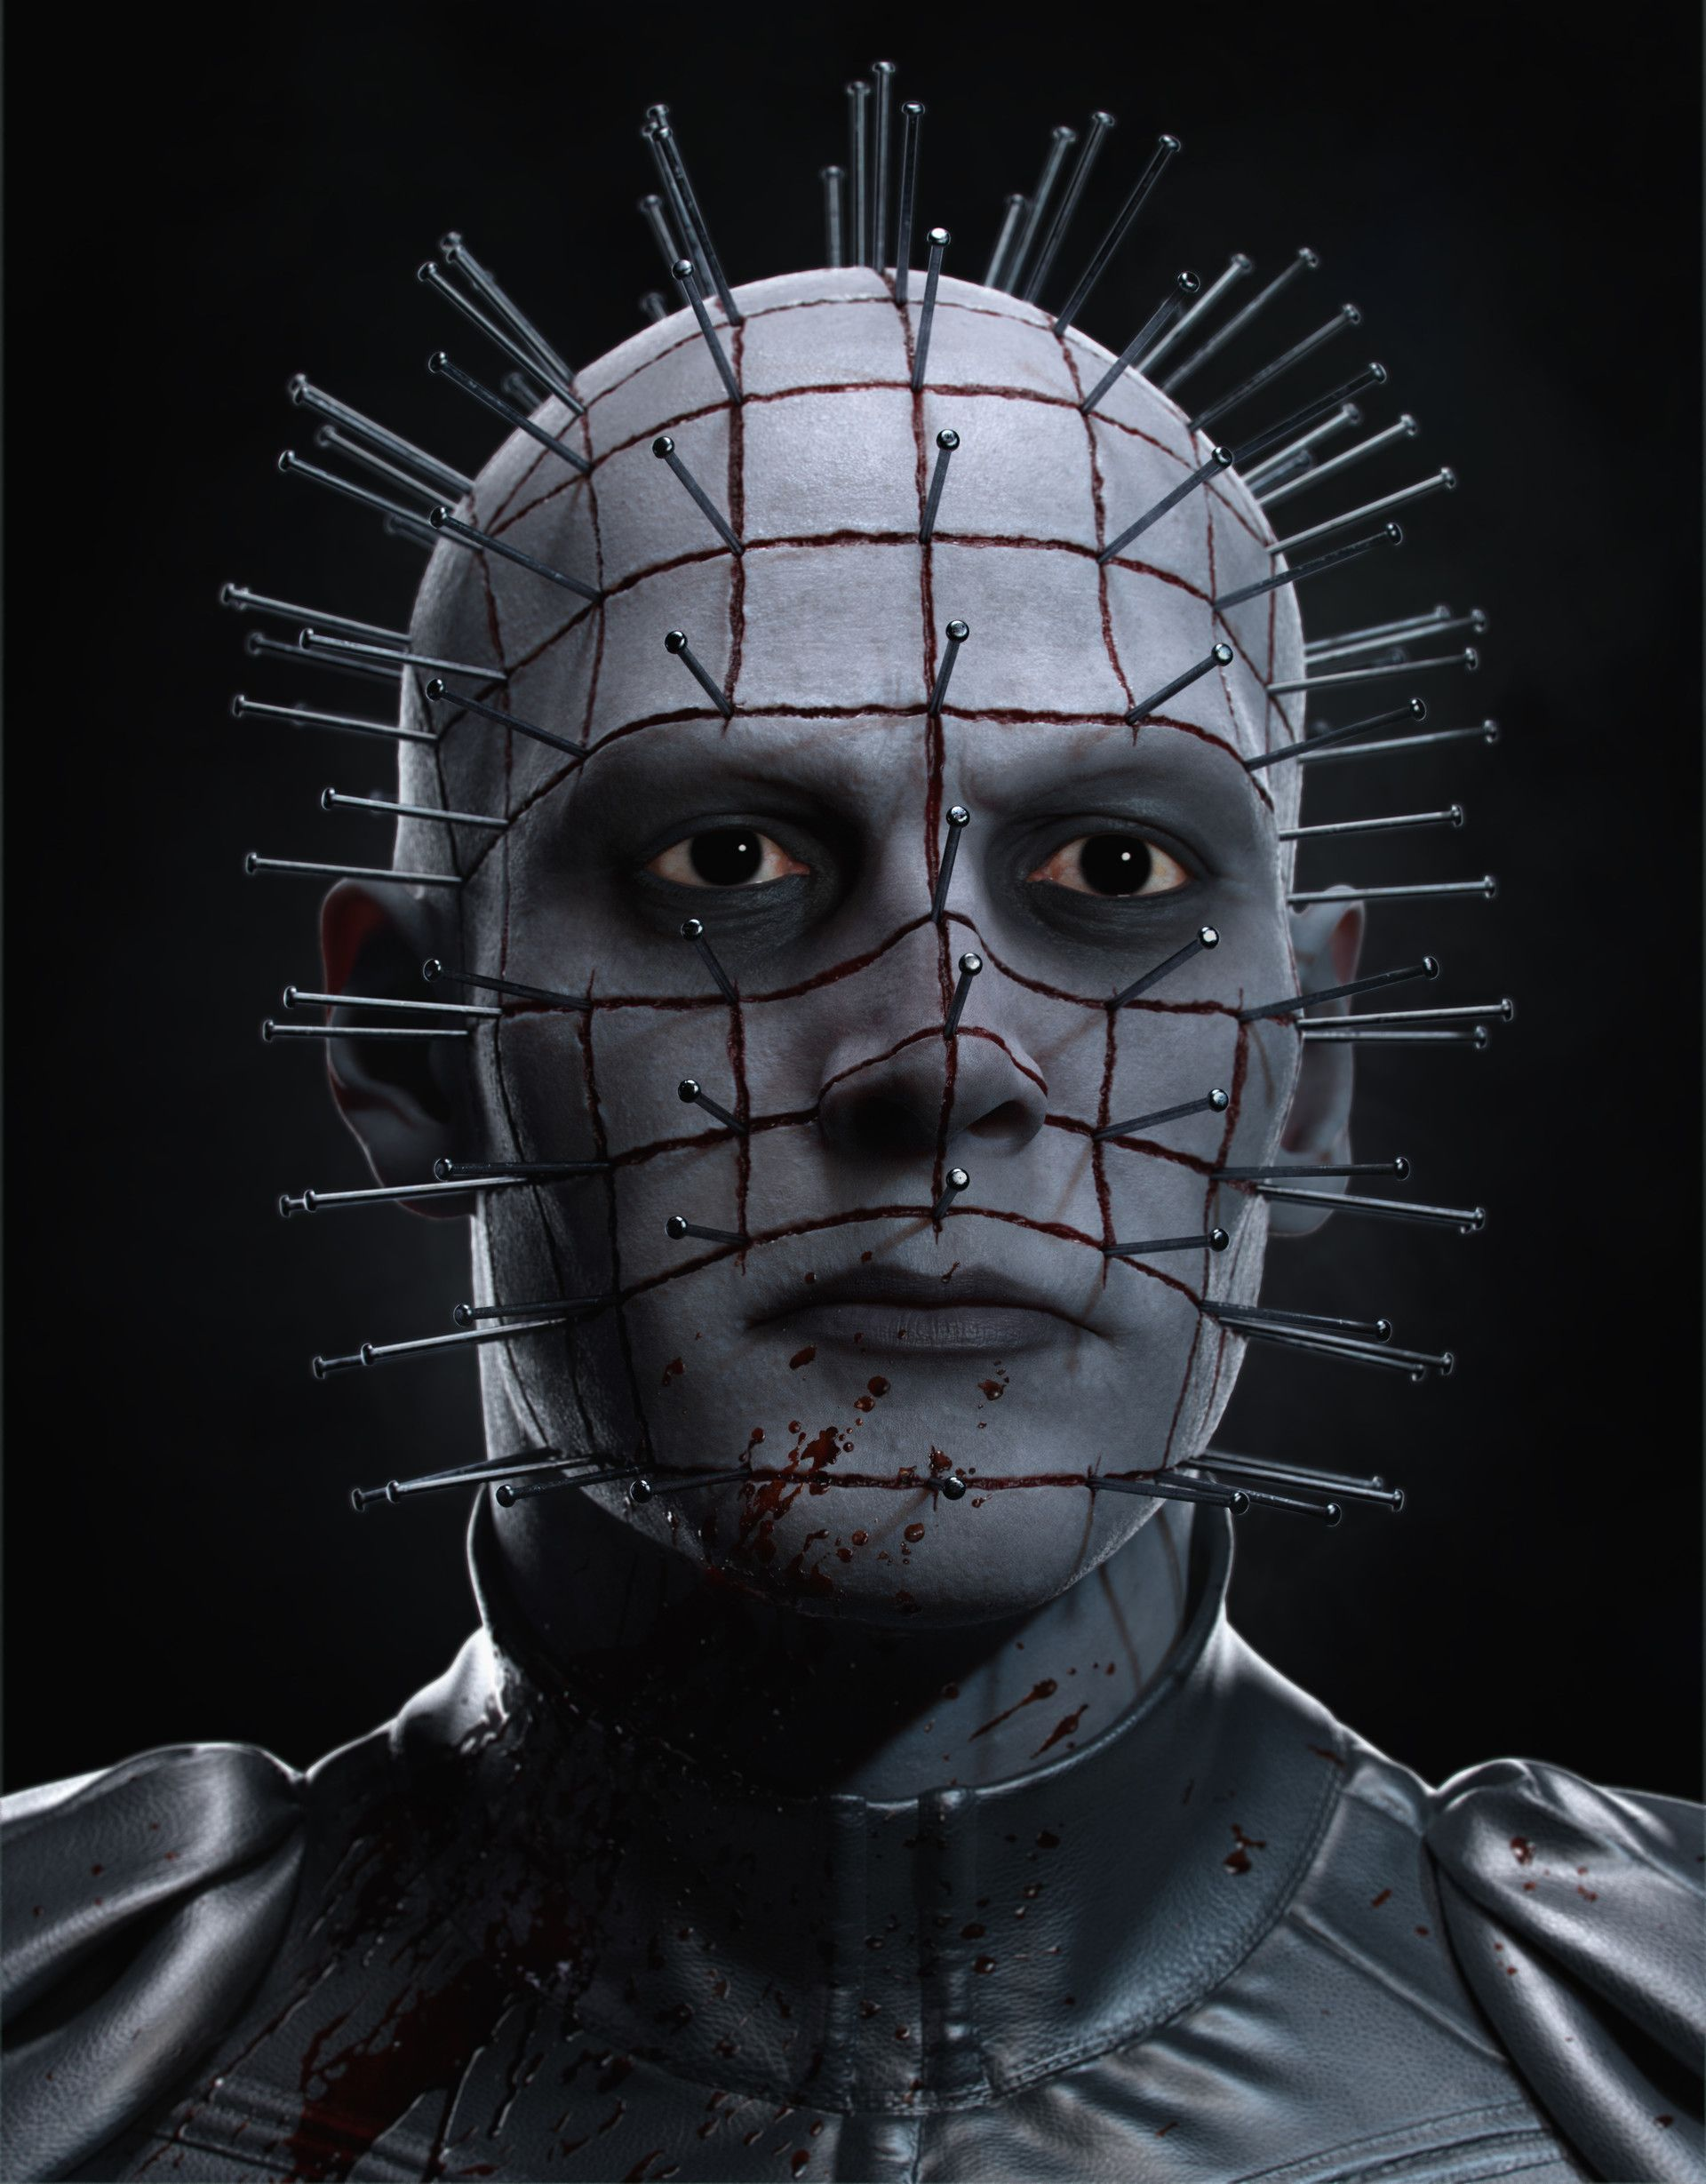 Made with Autodesk Maya 3D modeling and animation software - Pinhead